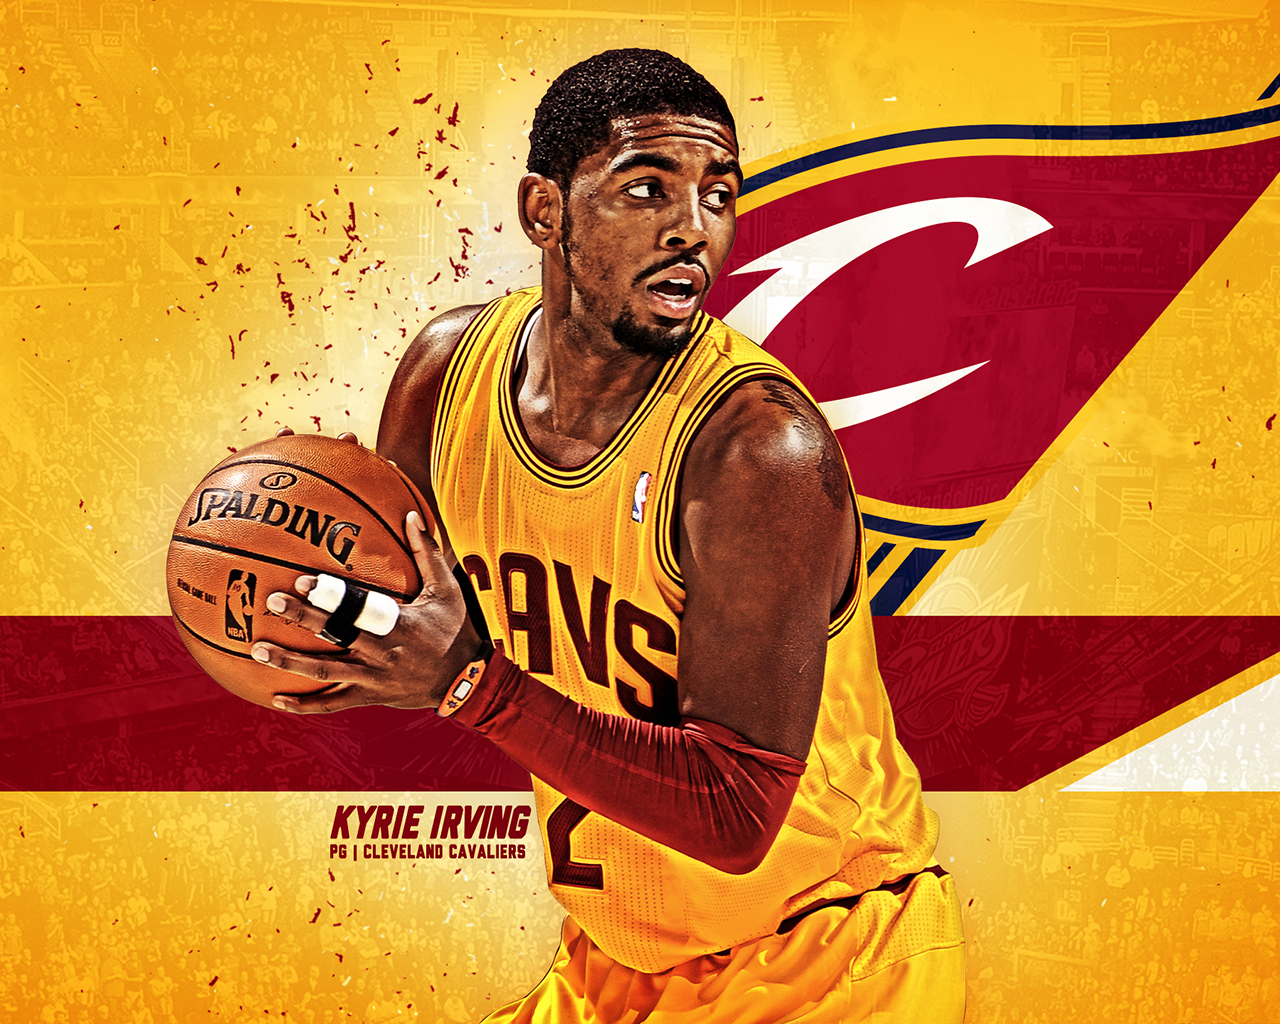 Kyrie irving 2018 wallpapers wallpapersafari - Derrick rose cavs wallpaper ...